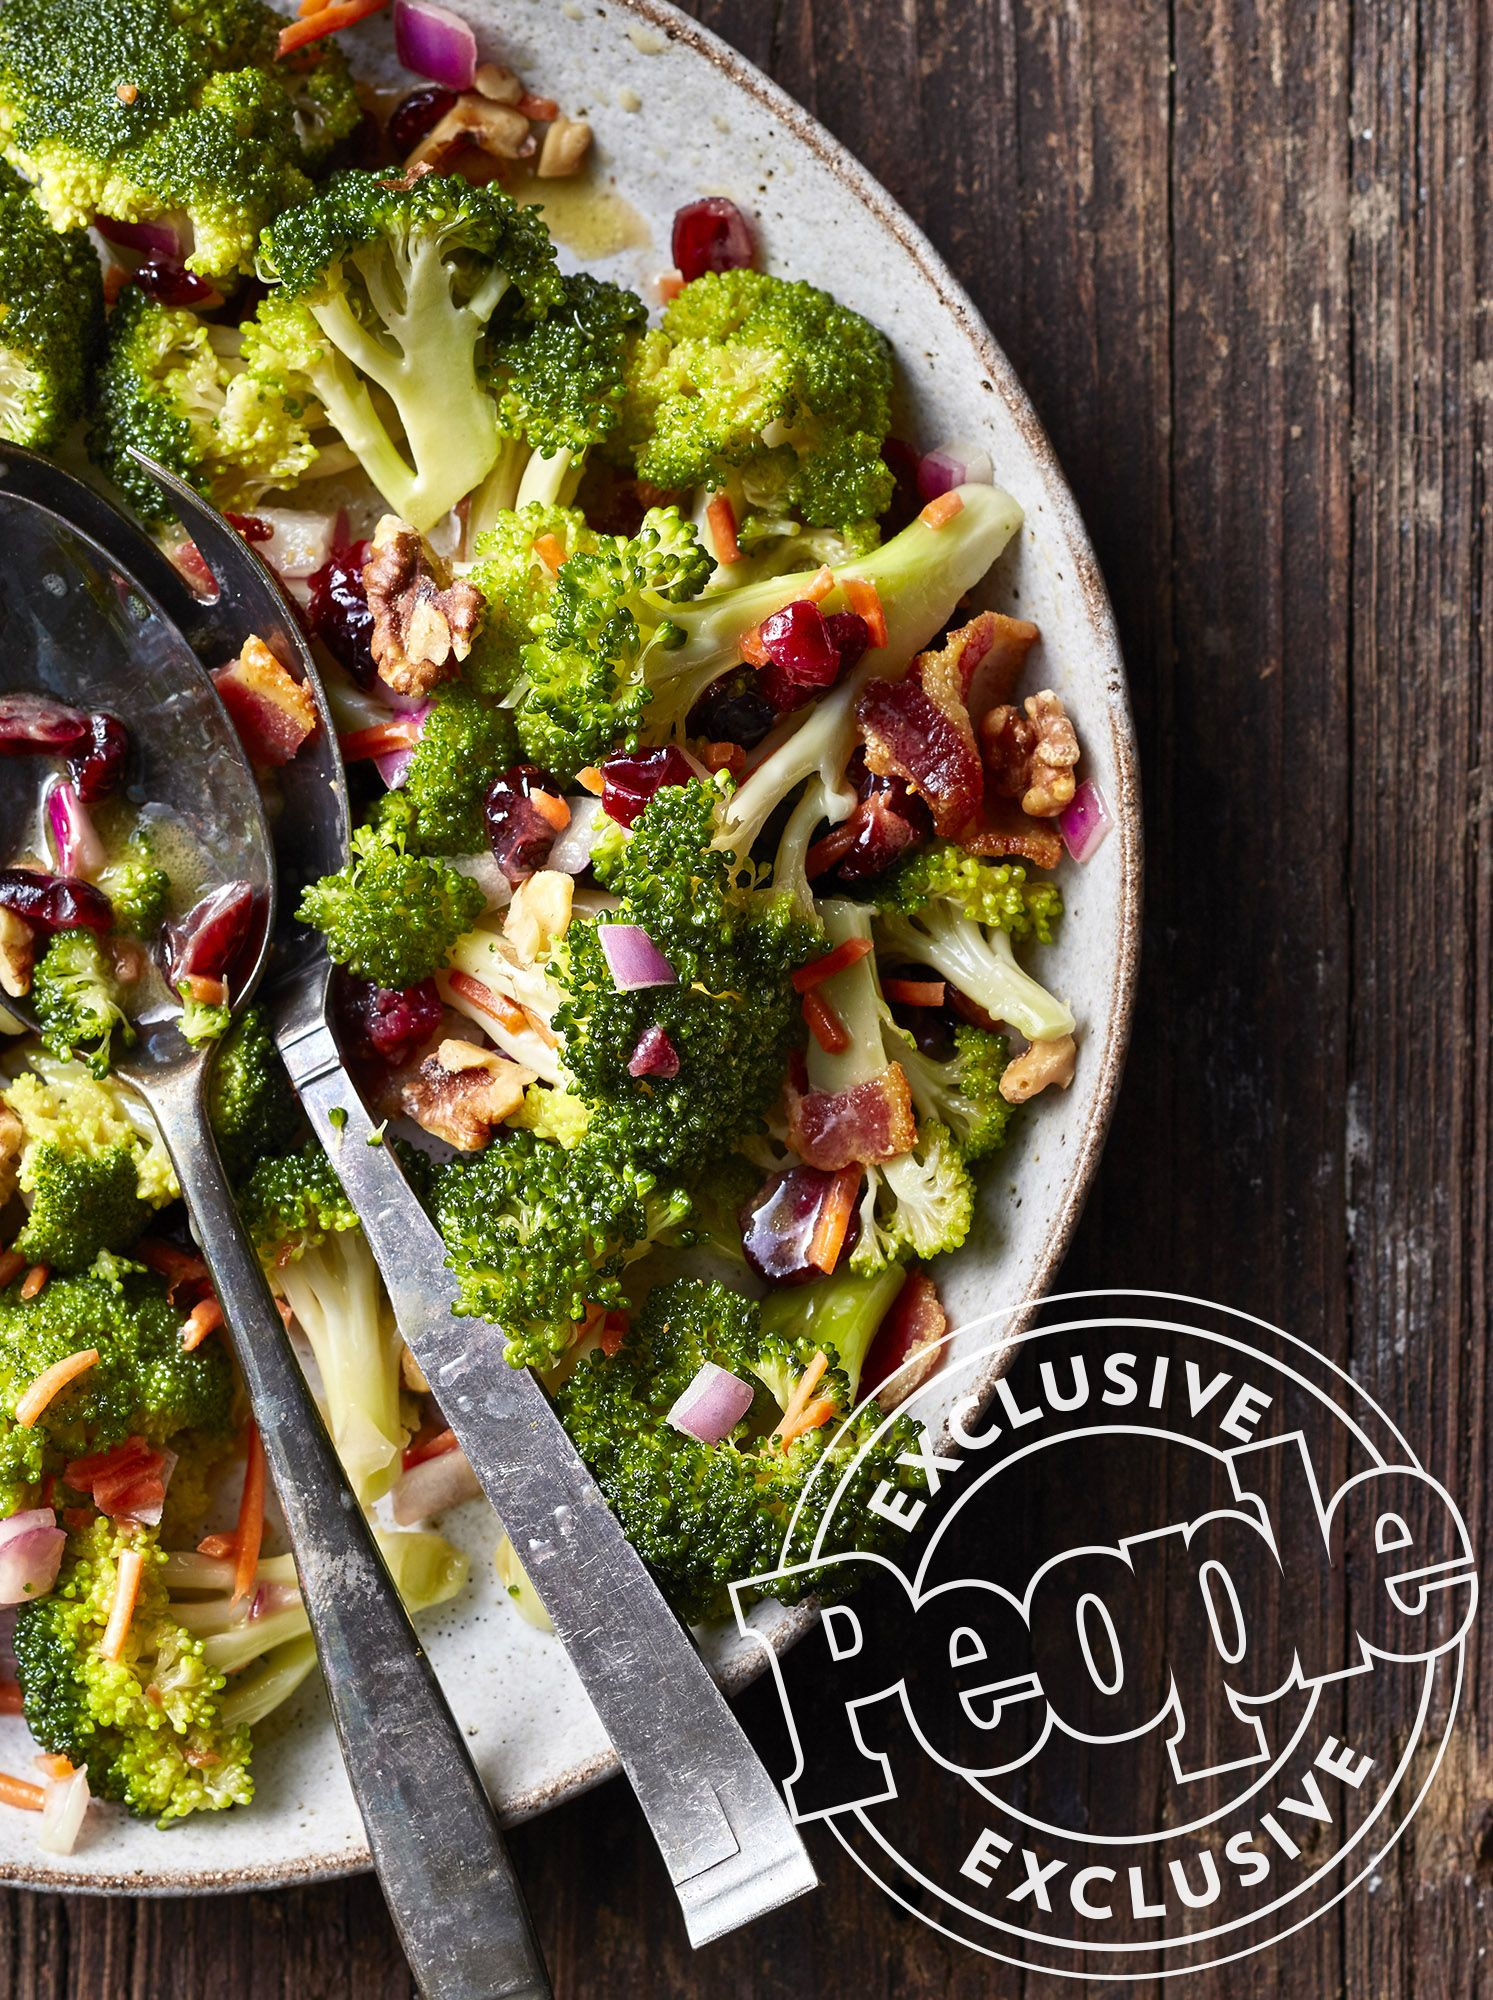 Valerie Bertinelli's Broccoli, Cranberry and Bacon Salad #valeriebertinellirecipes